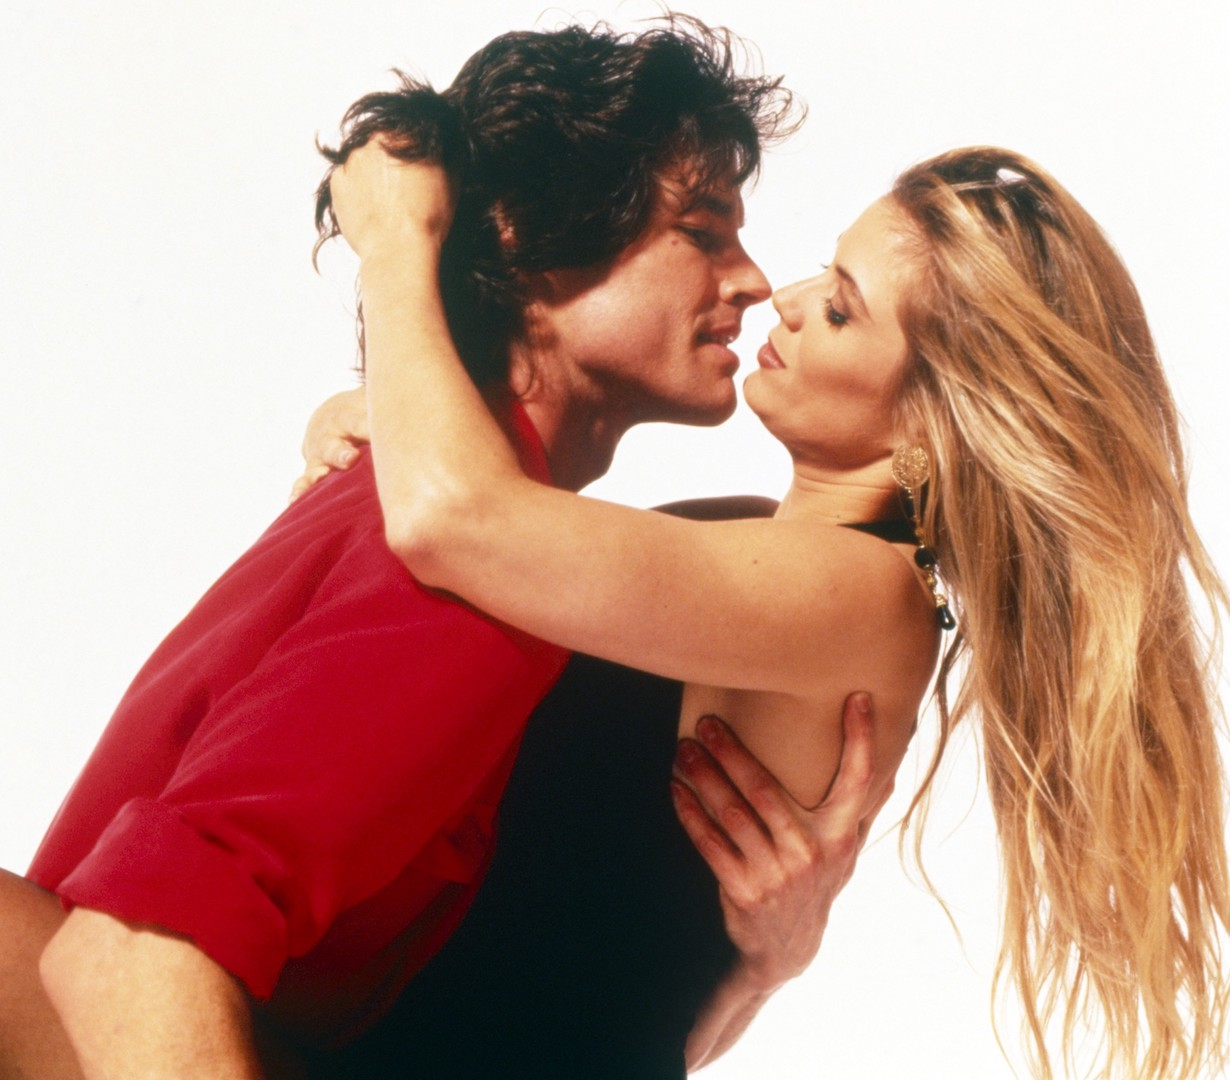 THE BOLD AND THE BEAUTIFUL, from left: Ronn Moss, Katherine Kelly Lang, 1990s, 1987– . ph: Jeff Katz / TV Guide /© CBS / Courtesy Everett Collection